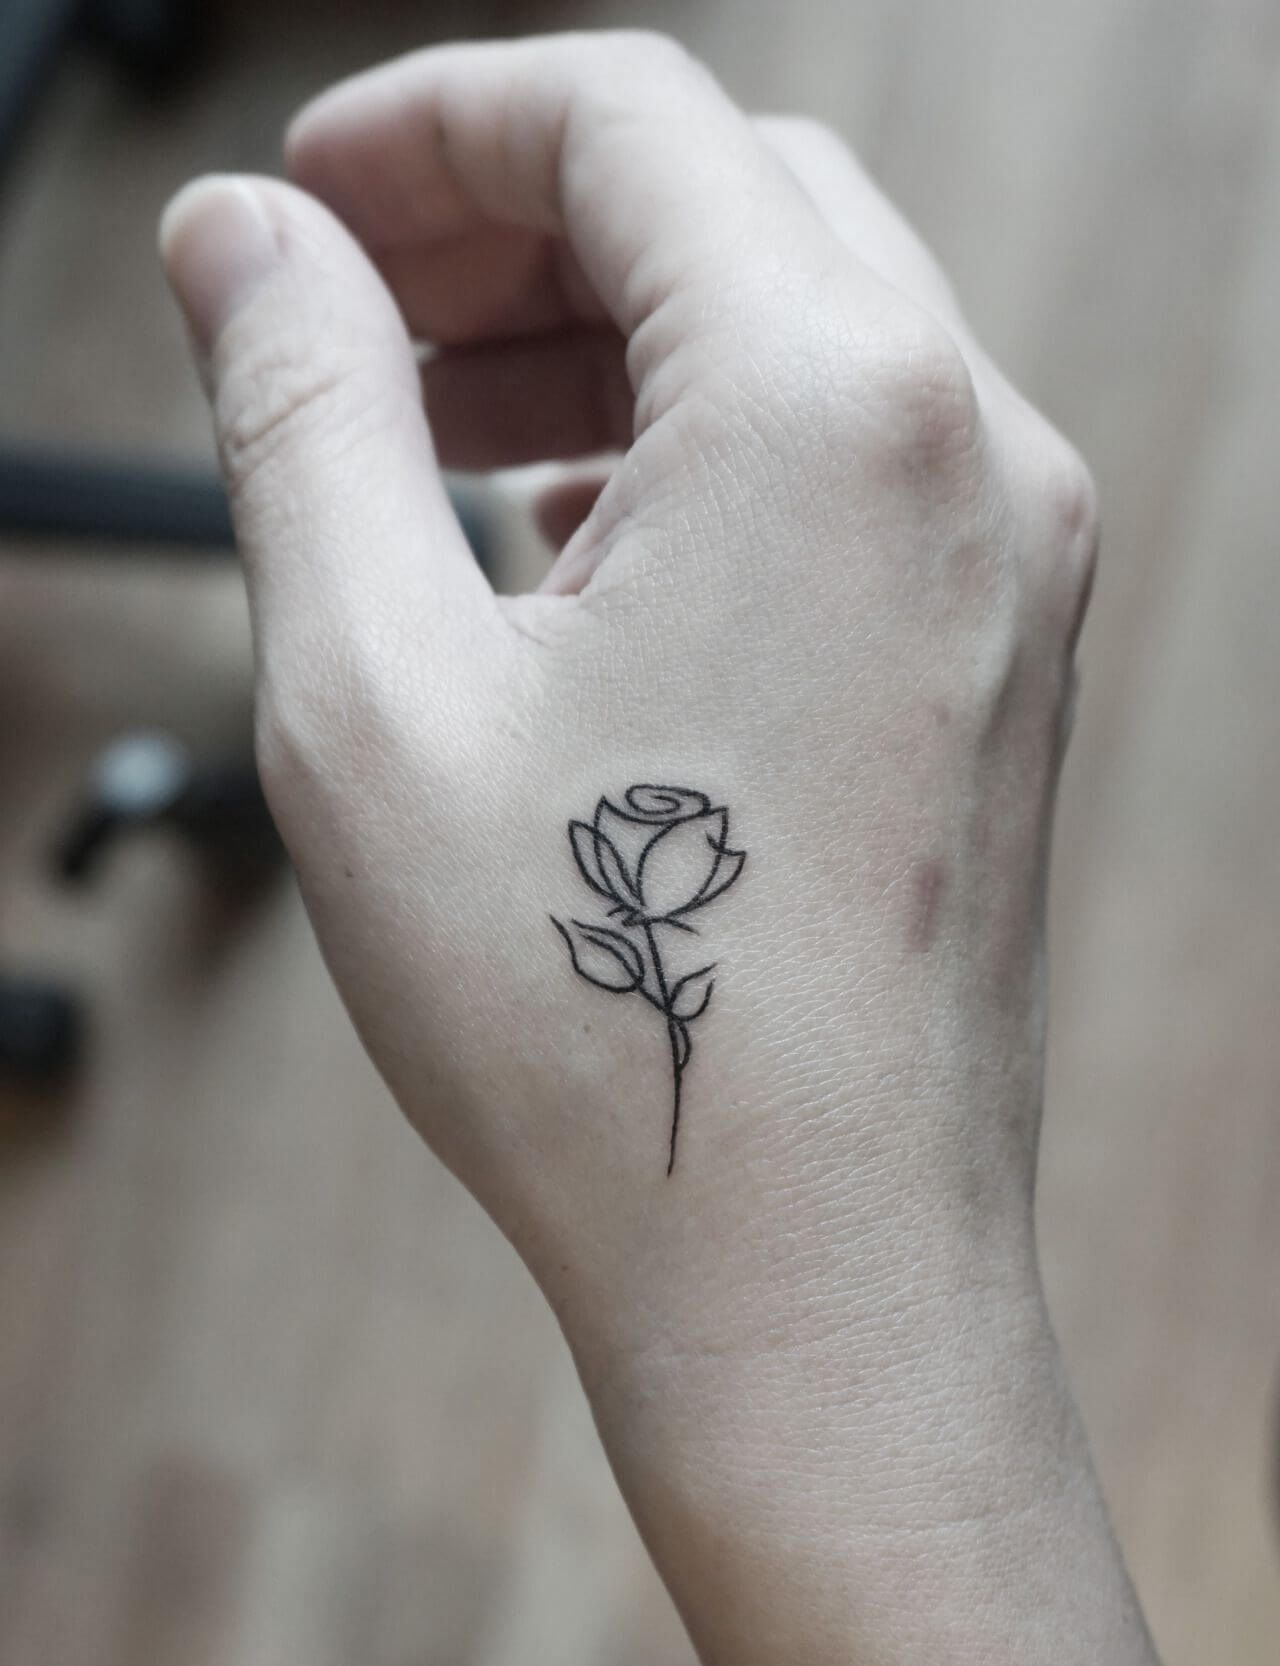 Simple Rose Tattoo Tattooquotes Simple Rose Tattoo Rose Tattoos Small Rose Tattoo